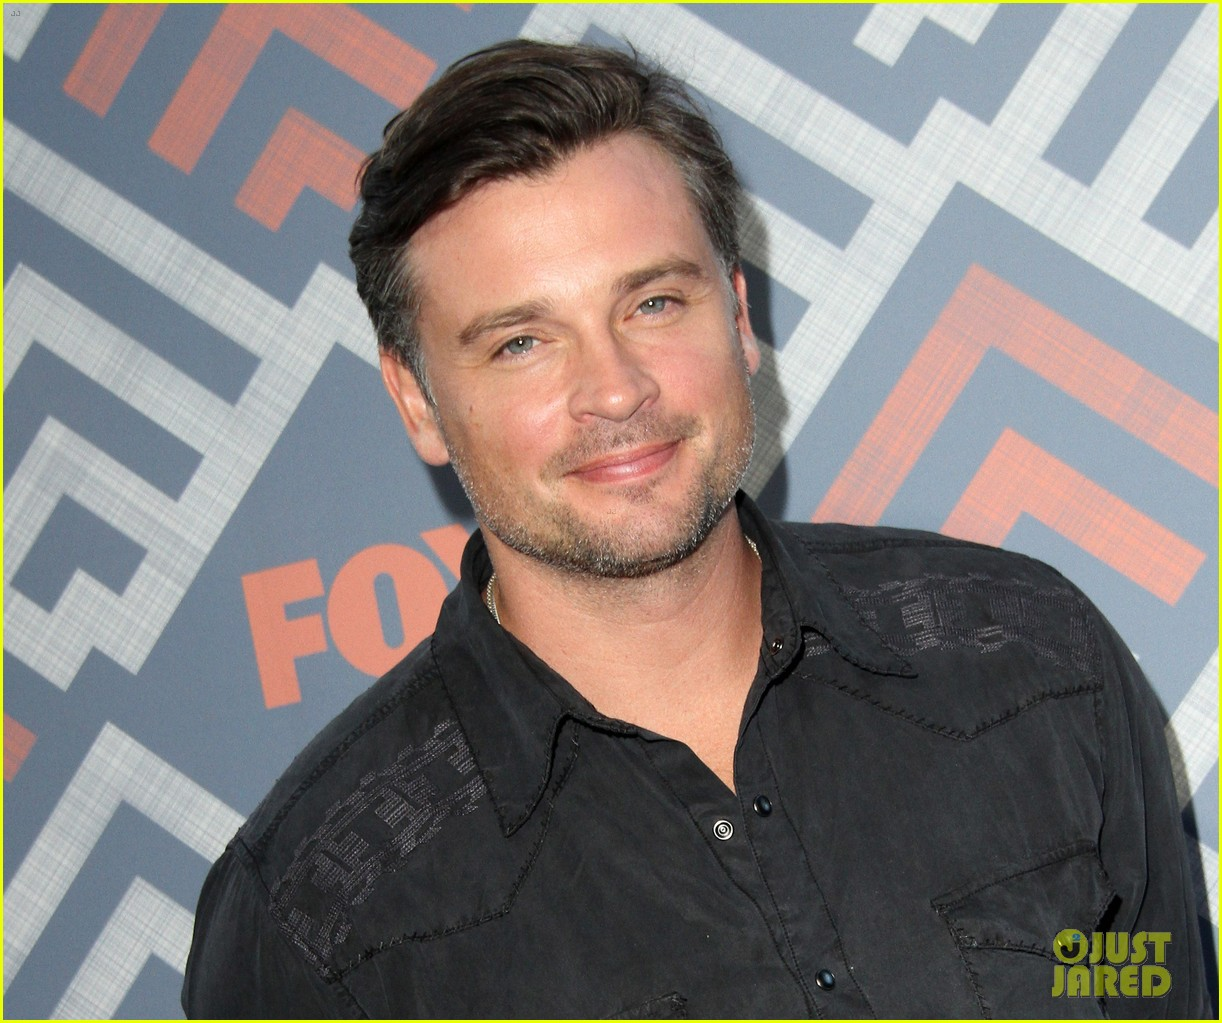 Tom Welling - Tom's Picture Thread #24: Now he's finally ...